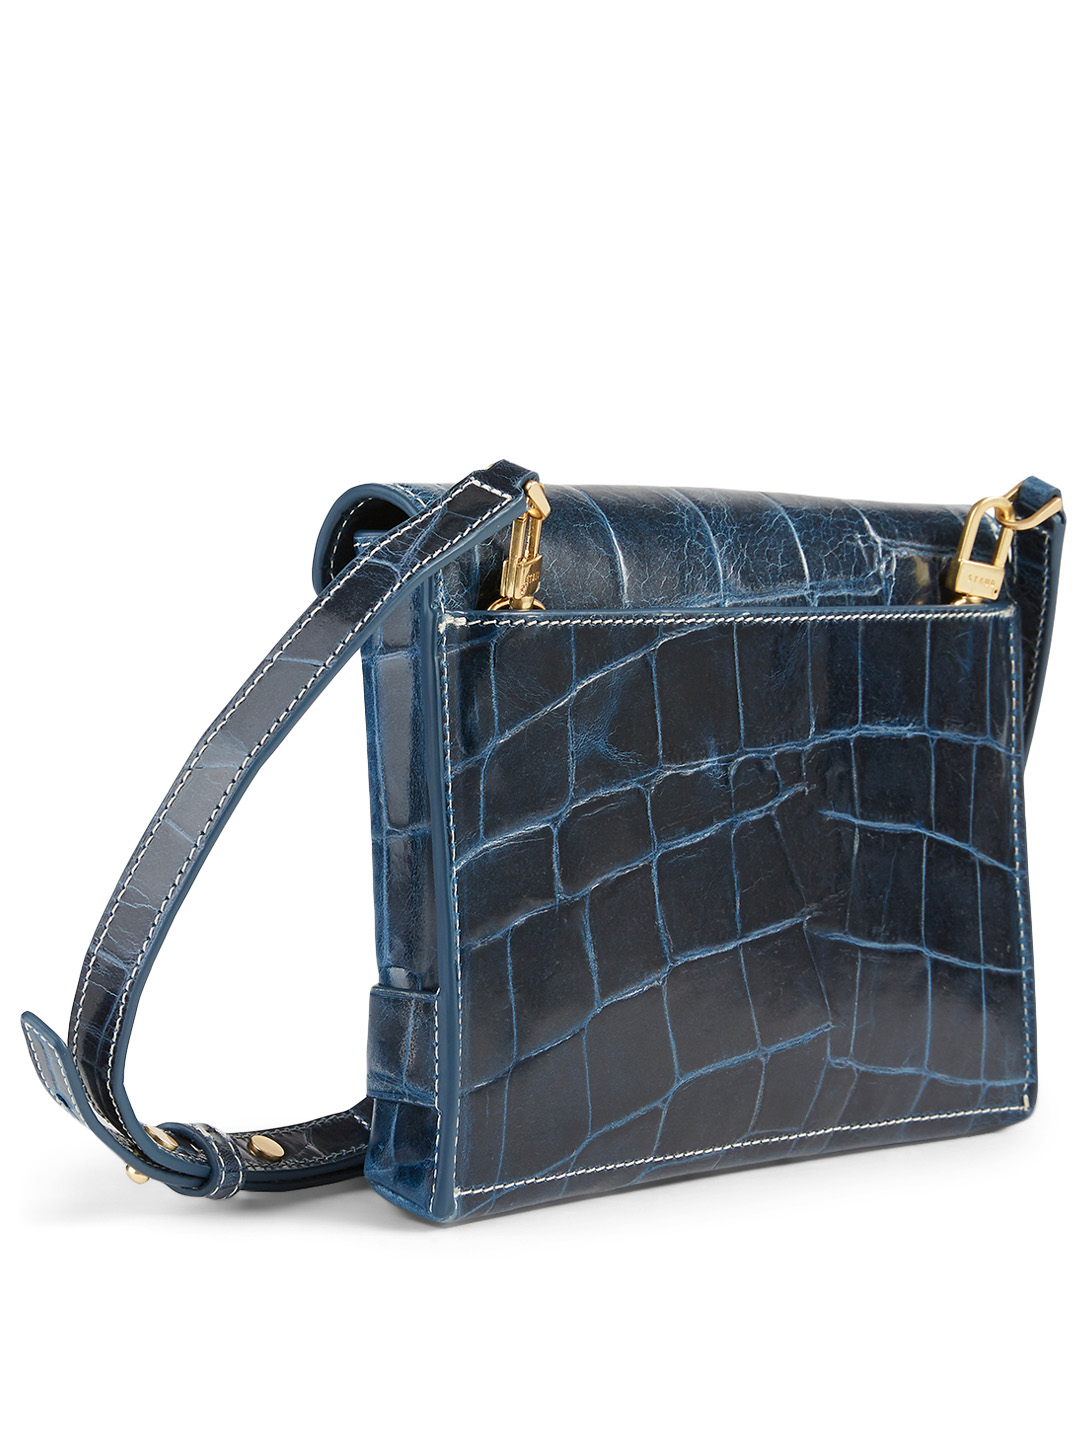 STAUD Holly Croc-Embossed Leather Convertible Bag Women's Blue